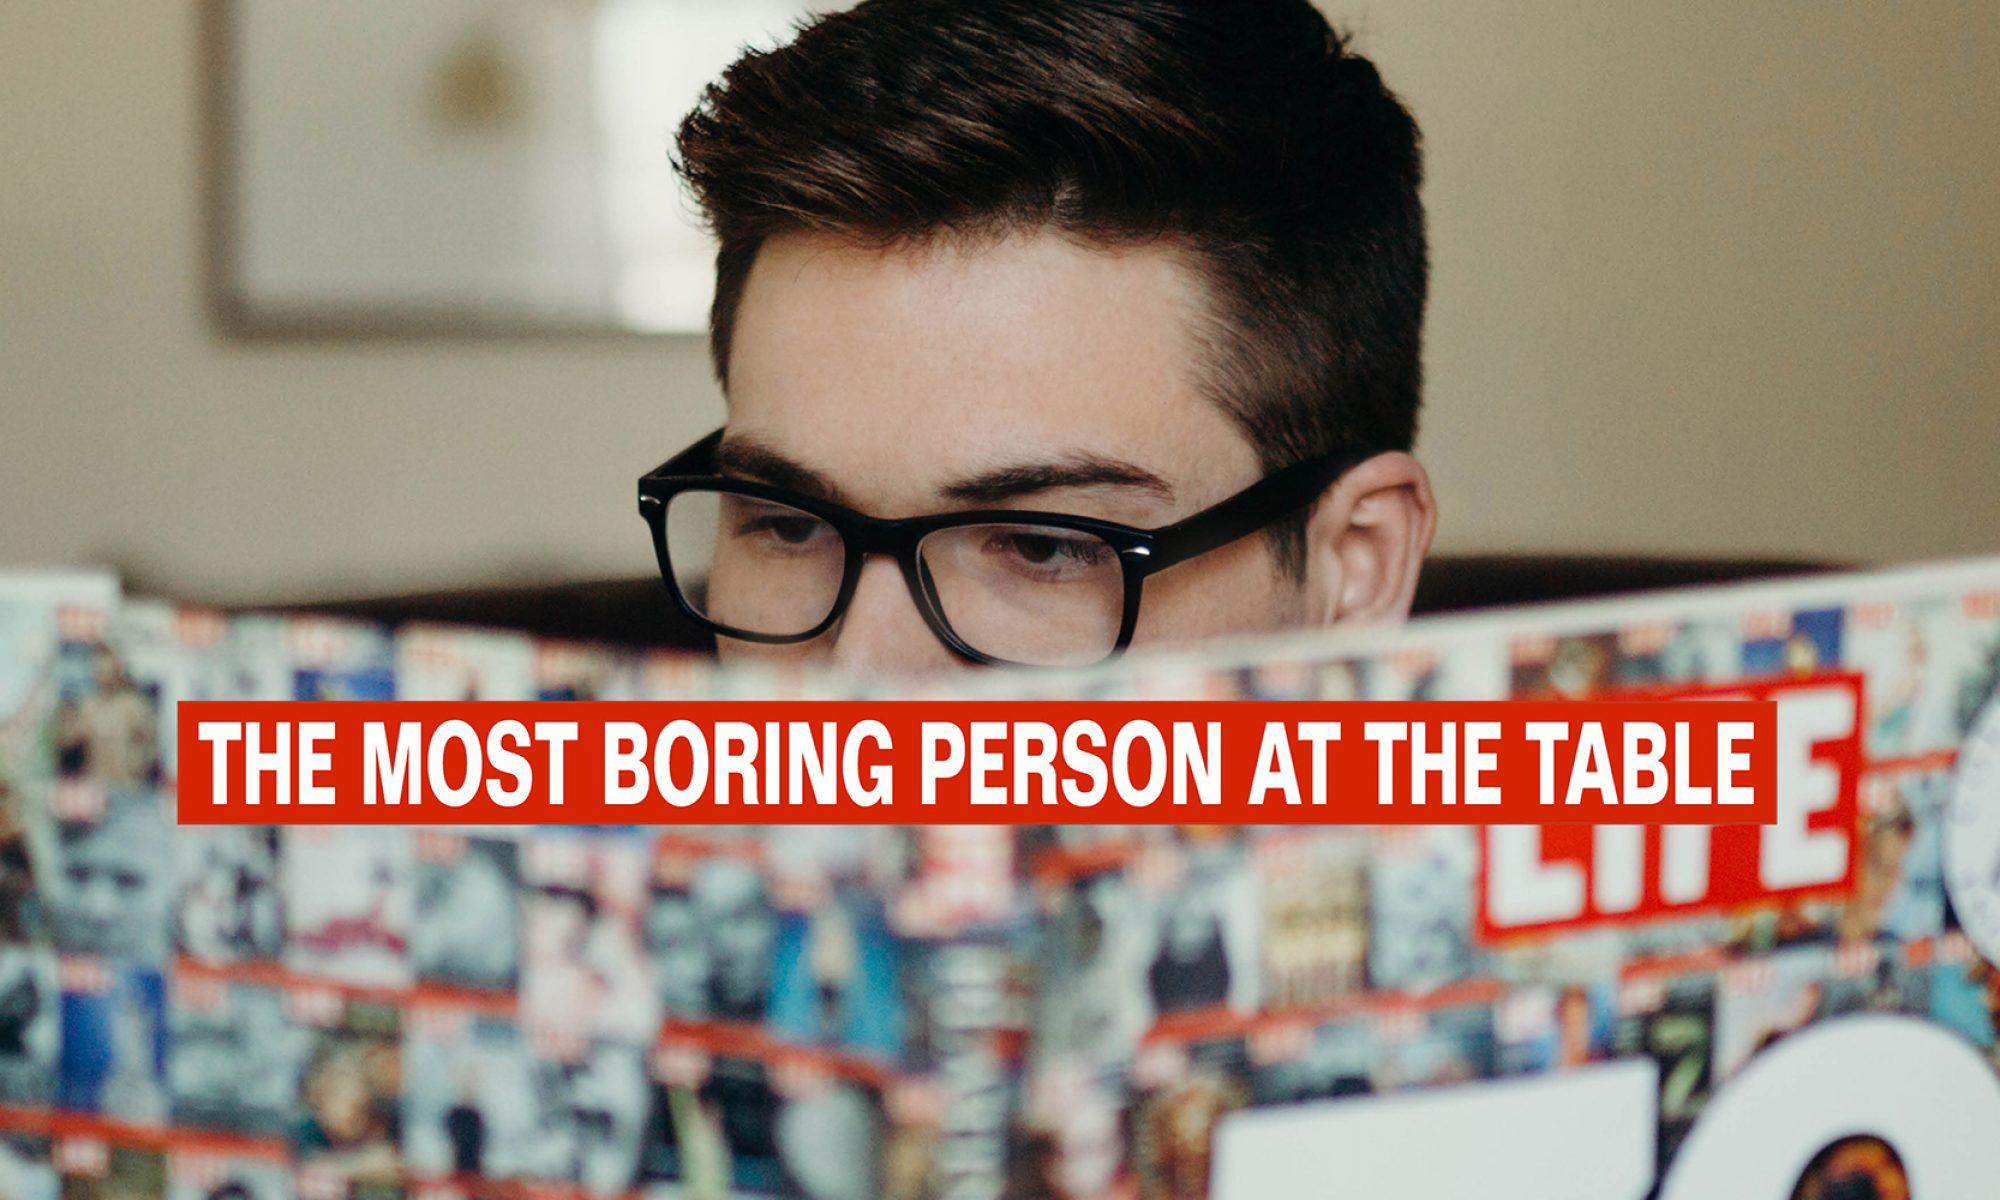 The Most Boring Person at the Table